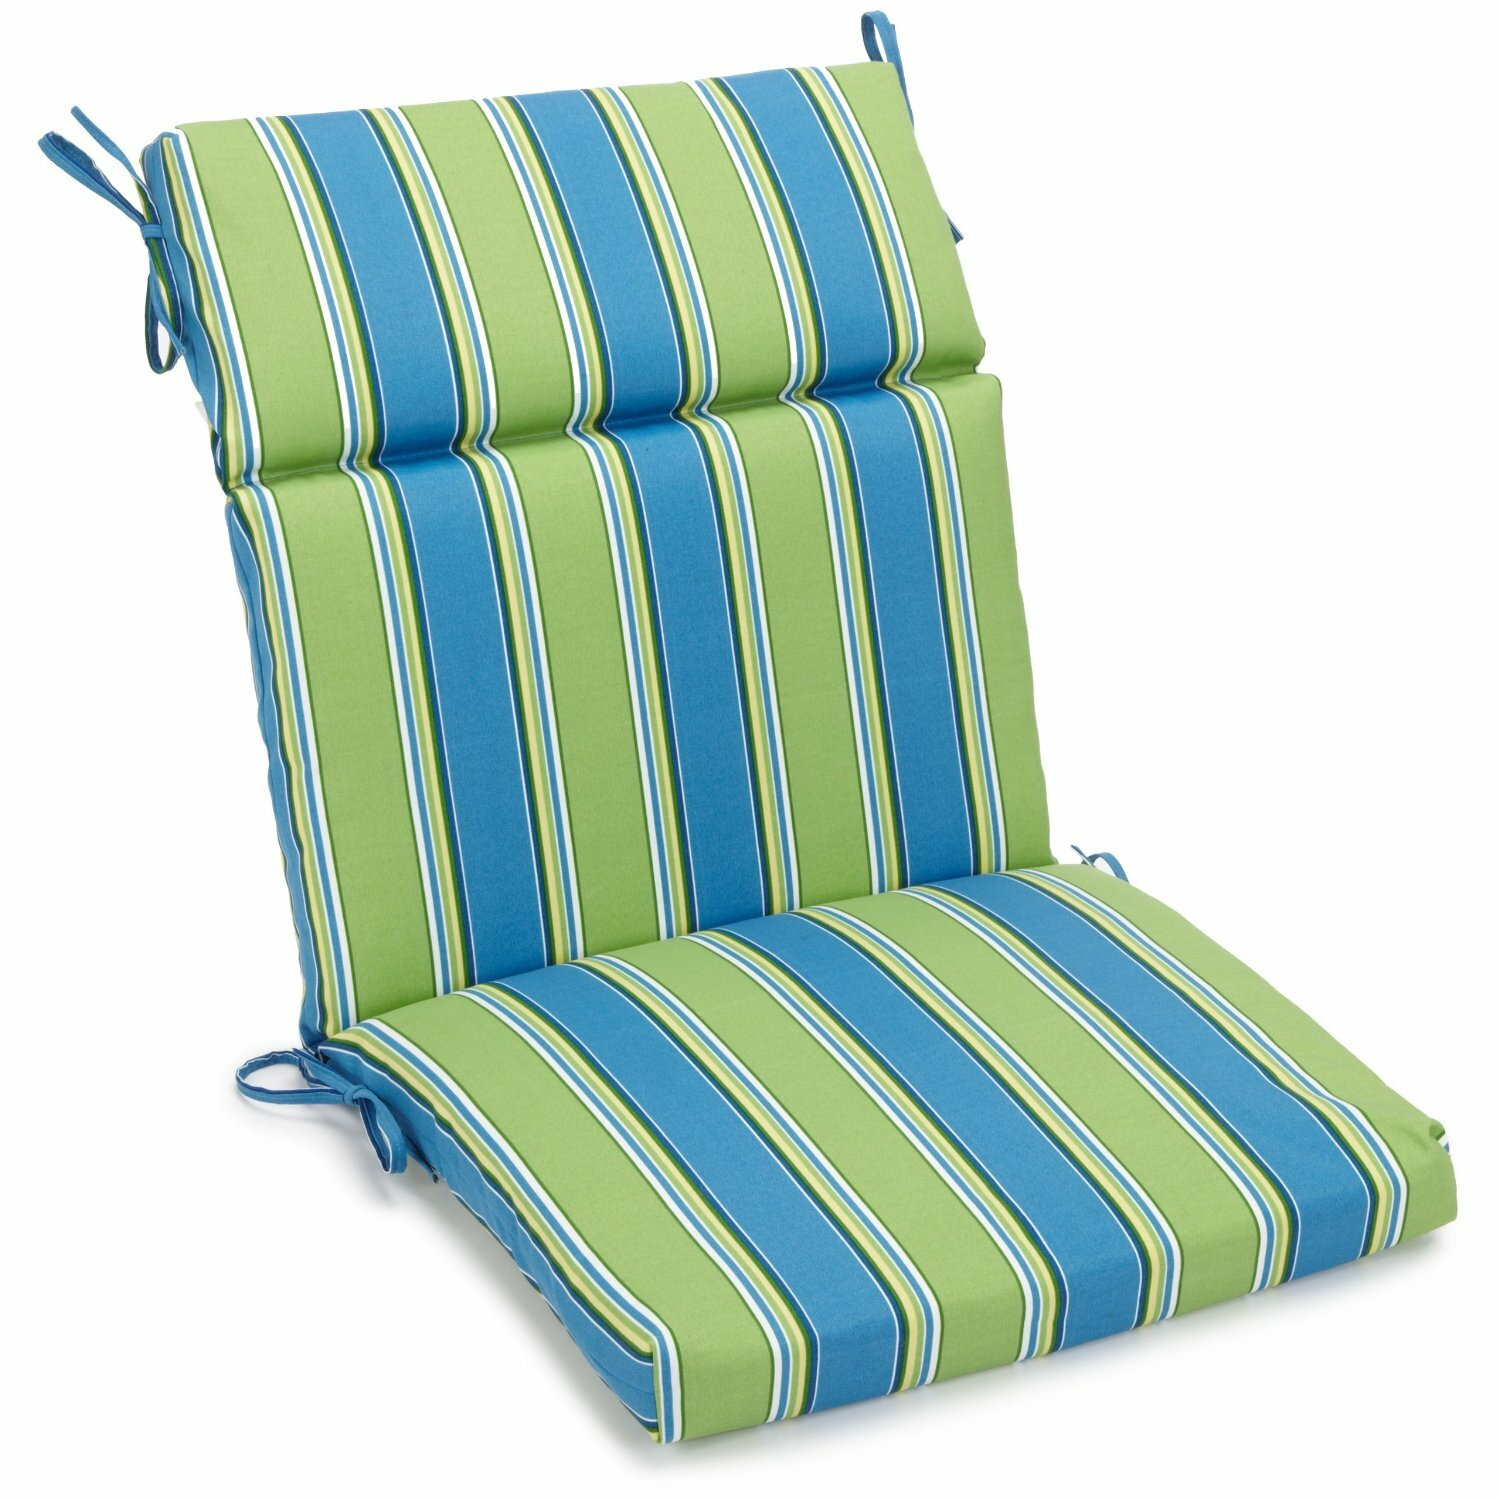 Blazing Needles Haliwell Outdoor Adirondack Chair Cushion